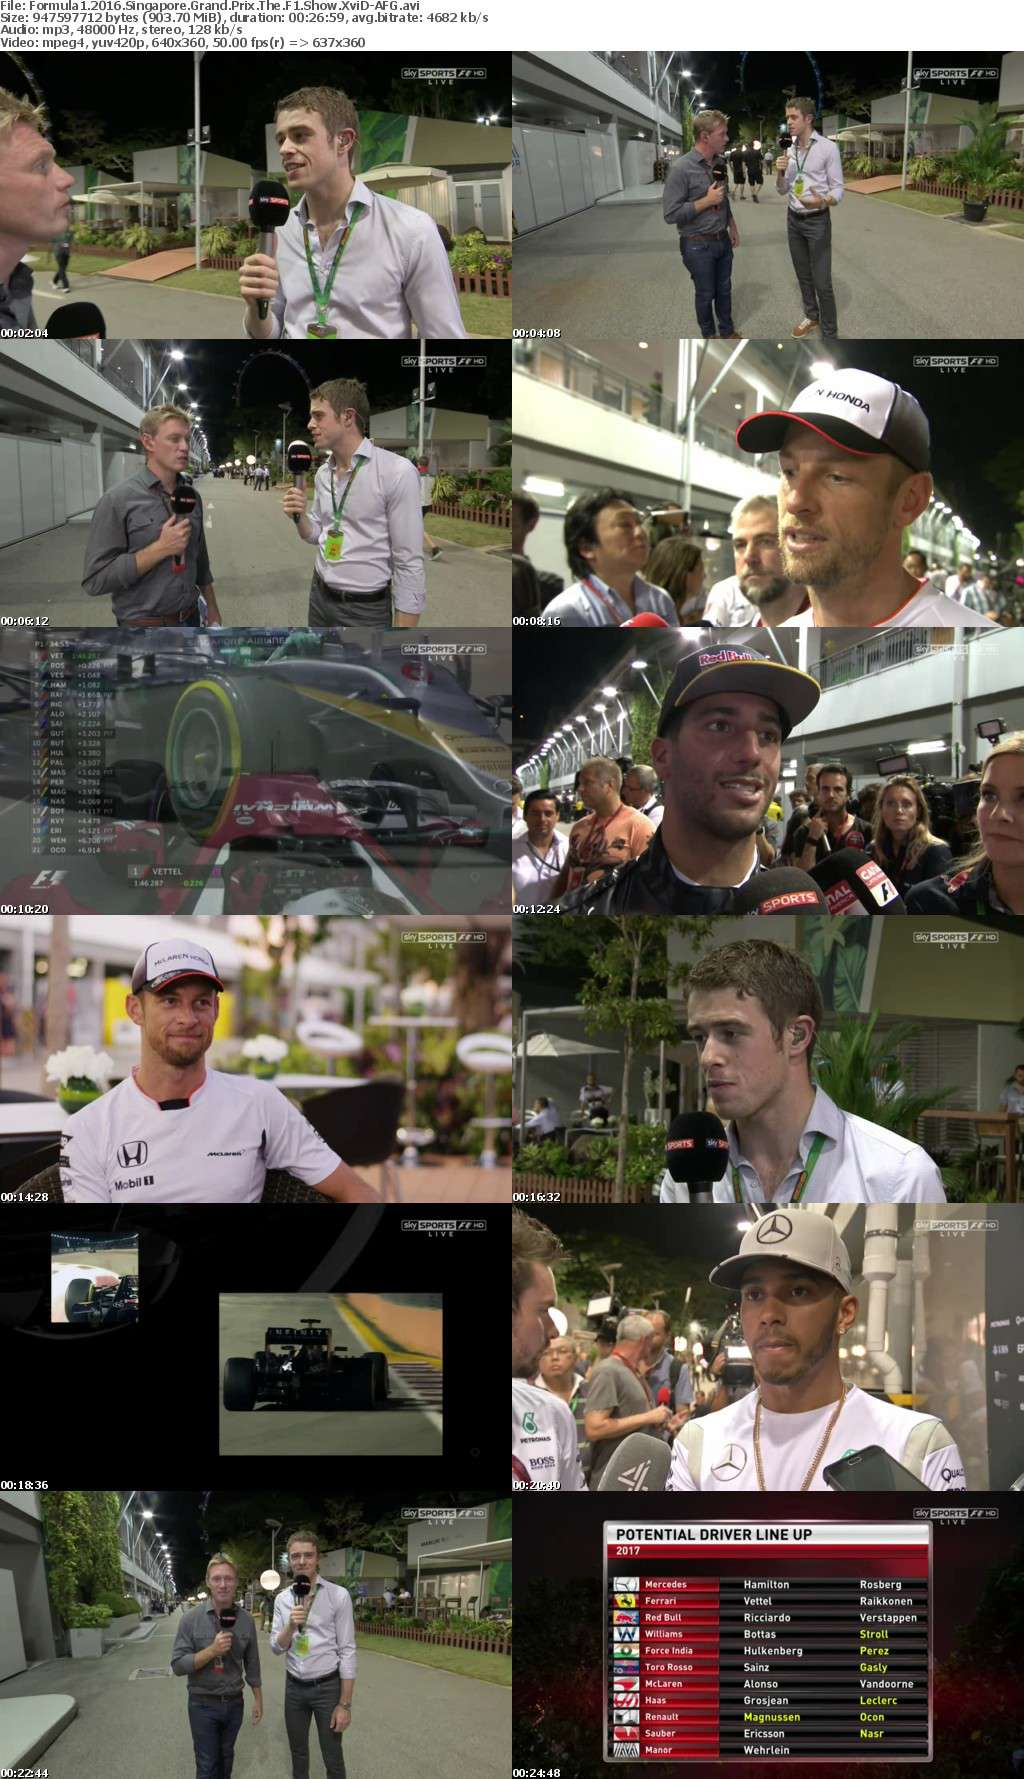 Formula1 2016 Singapore Grand Prix The F1 Show XviD-AFG